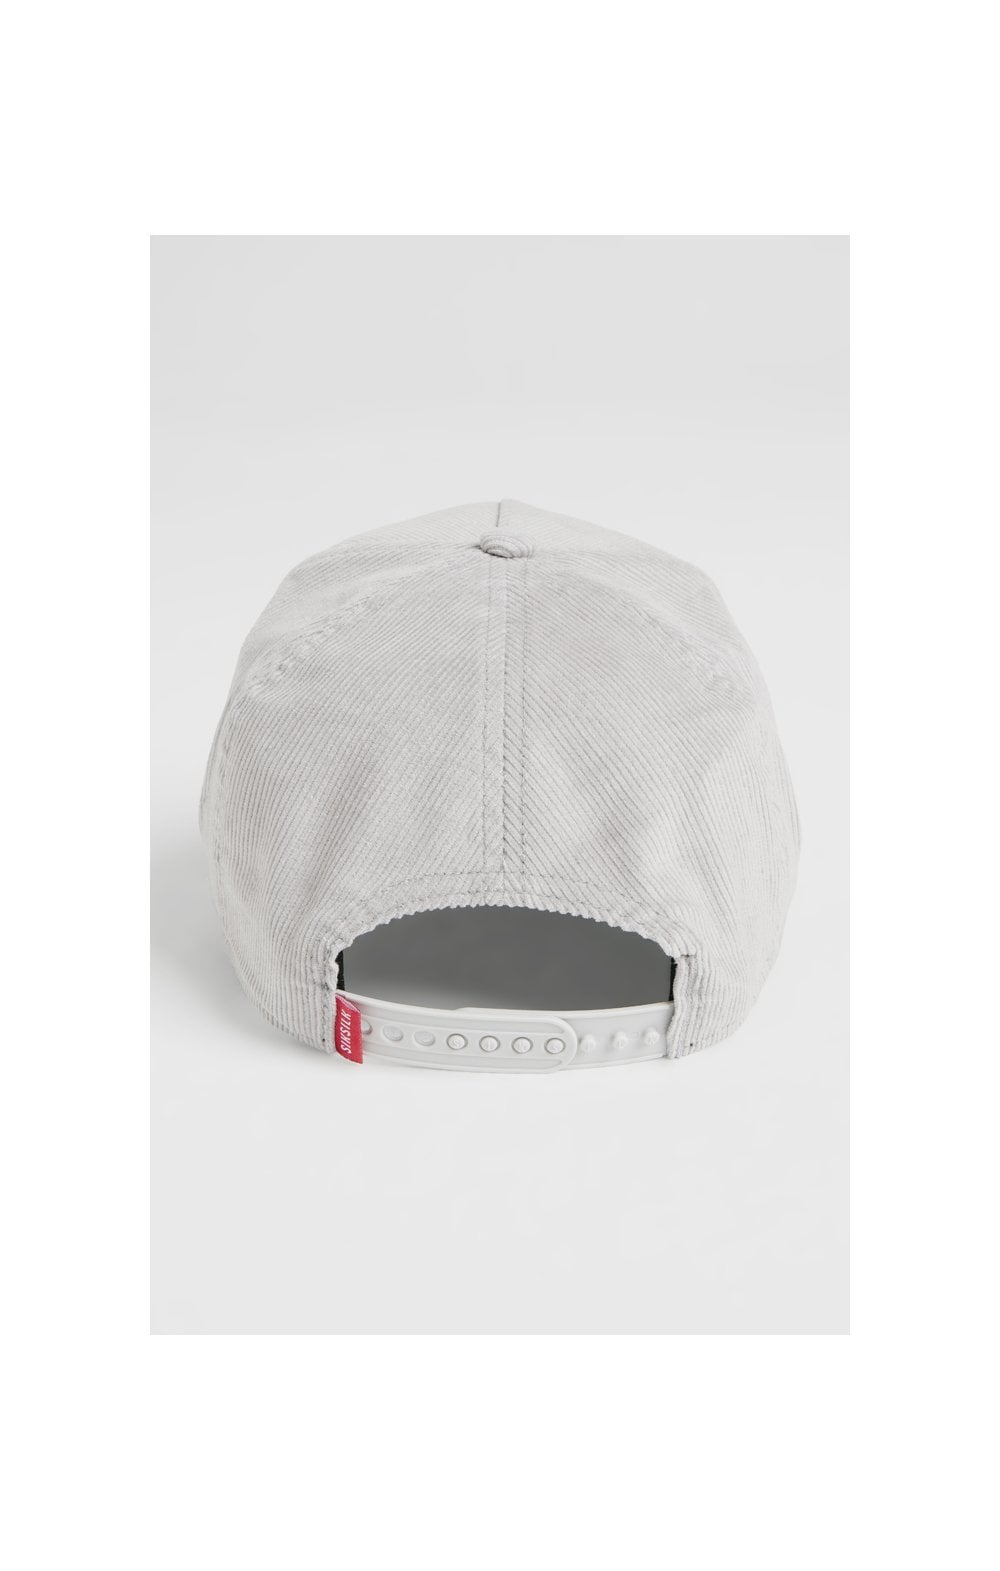 SikSilk Corduroy Full Trucker - Light Grey (6)